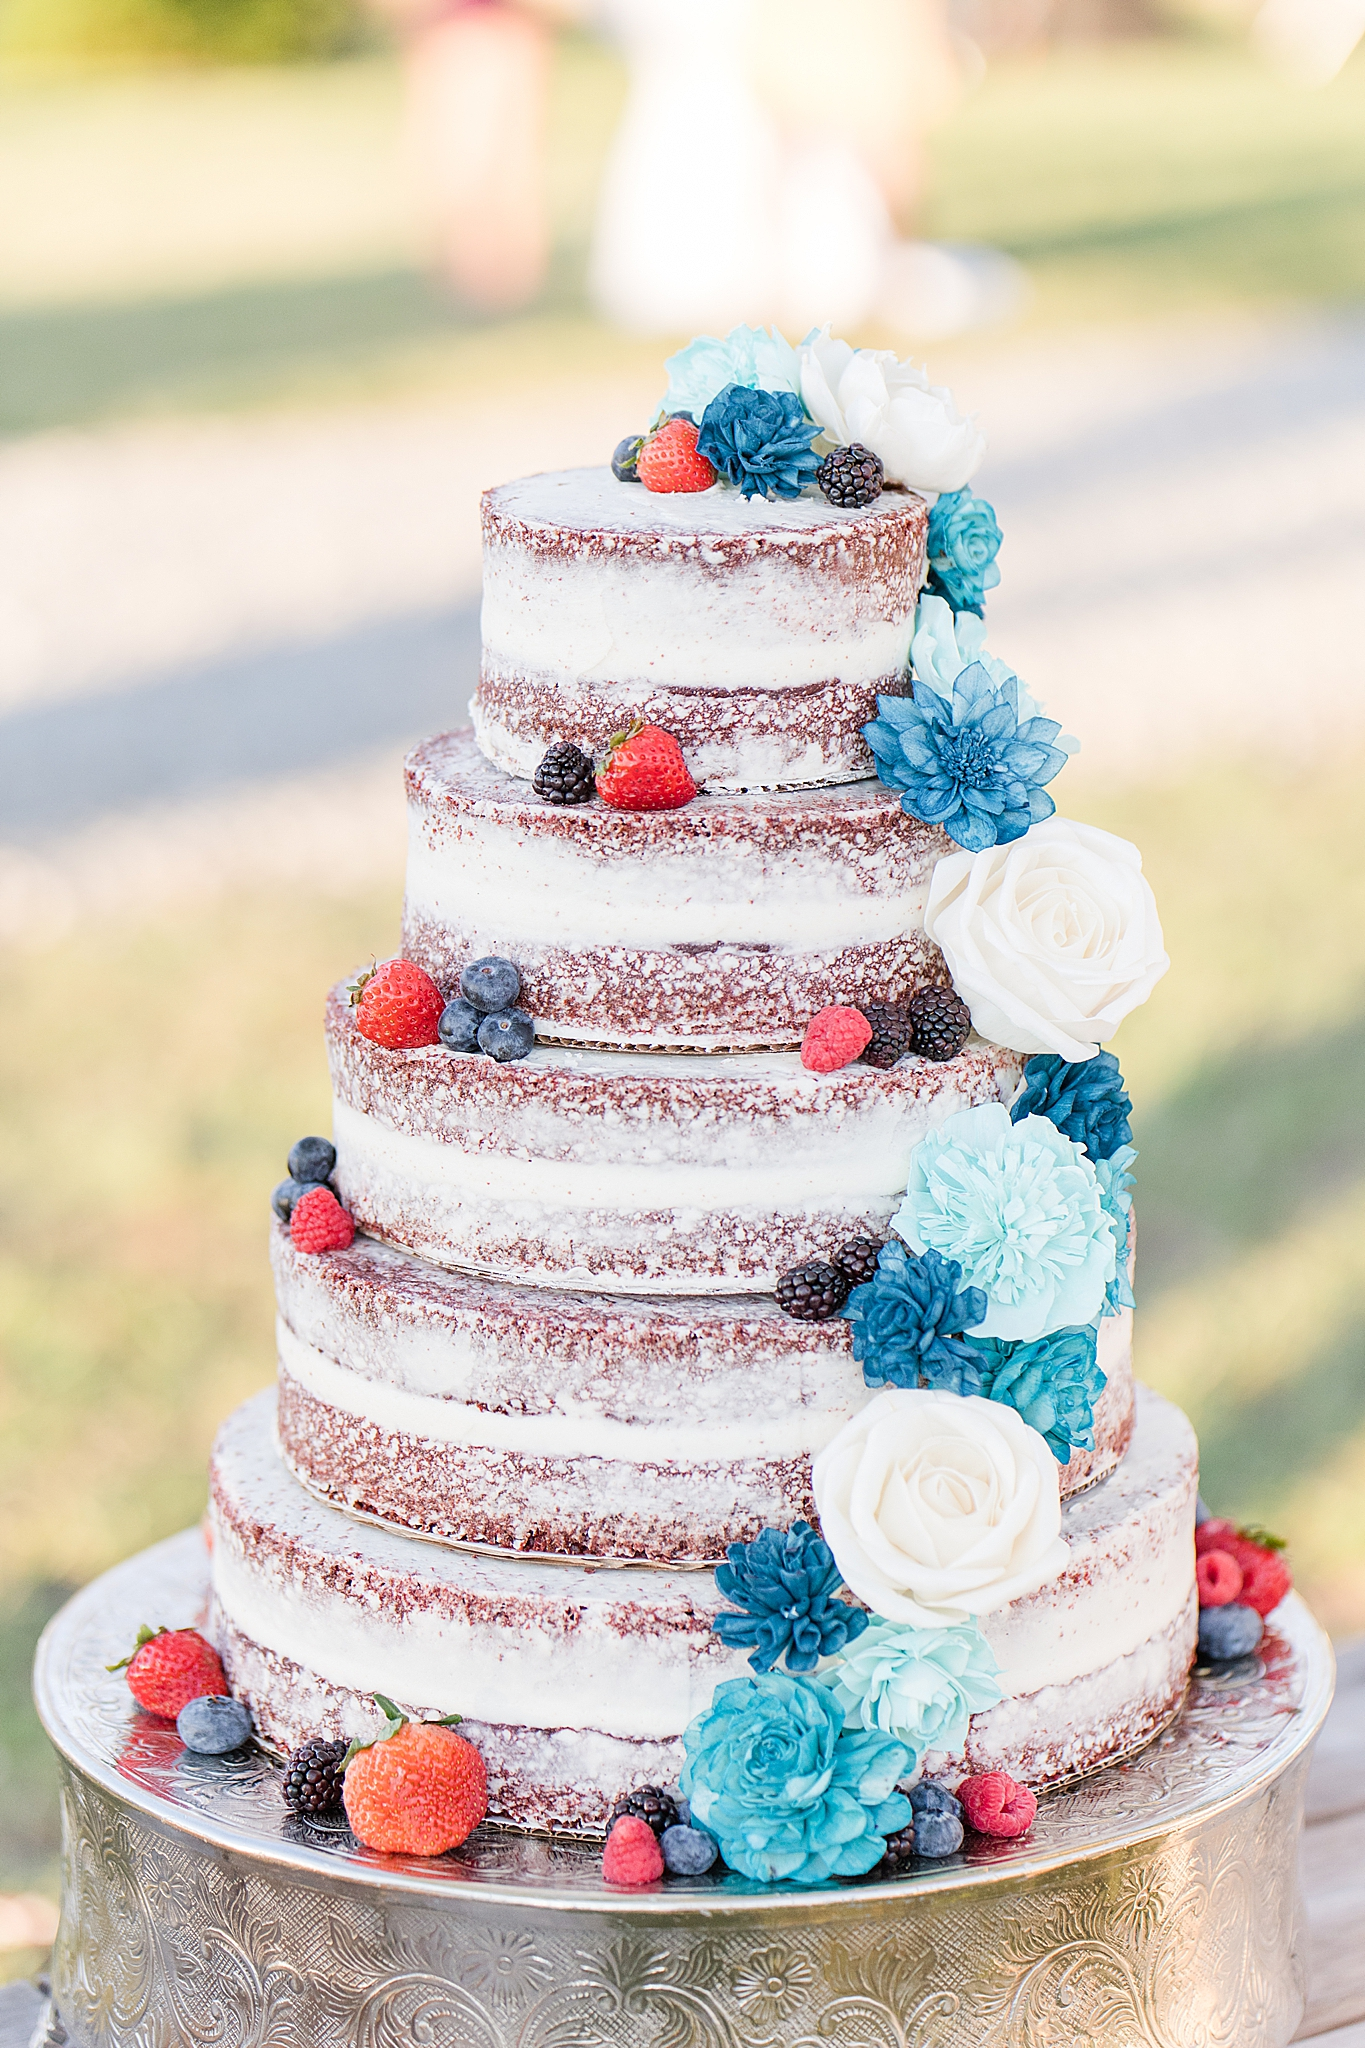 naked cake with fruit and blue flower accents